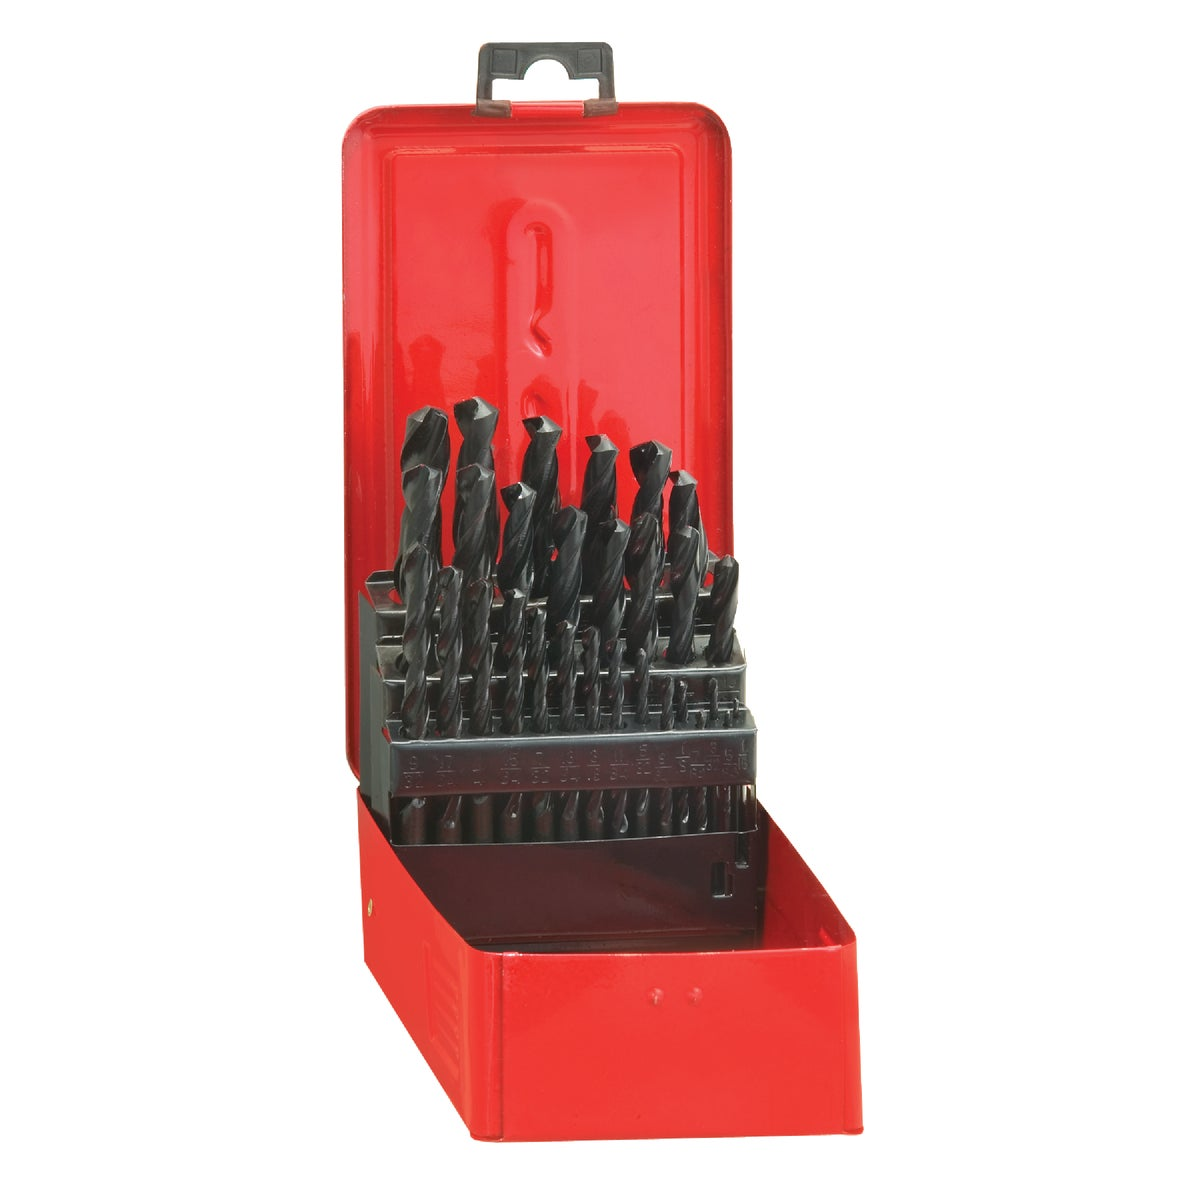 29PC CS INDEX DRILL SET - 321262 by Do it Best